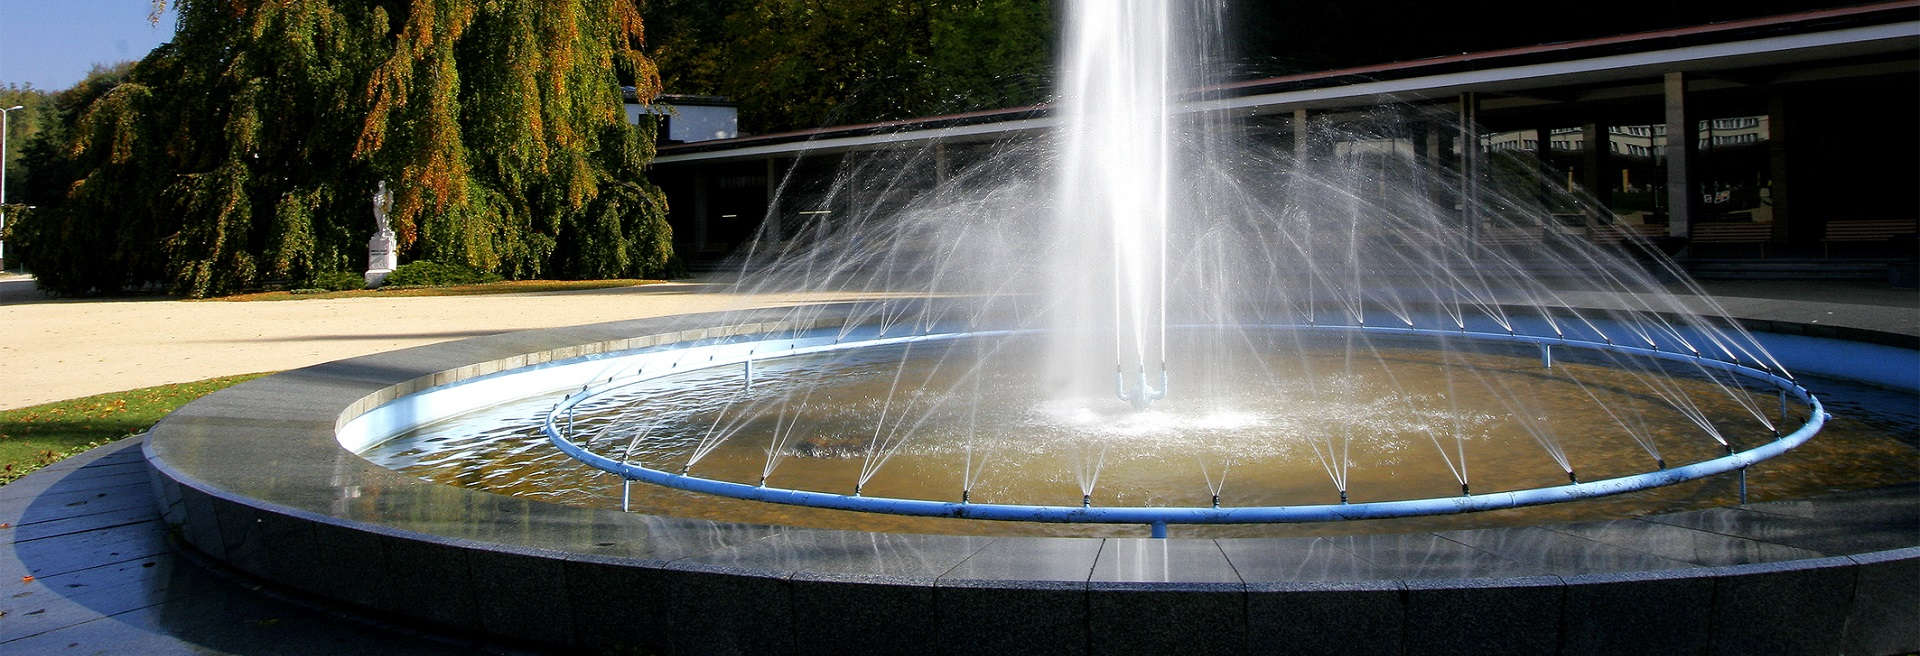 Fountain in spa town Luhačovice